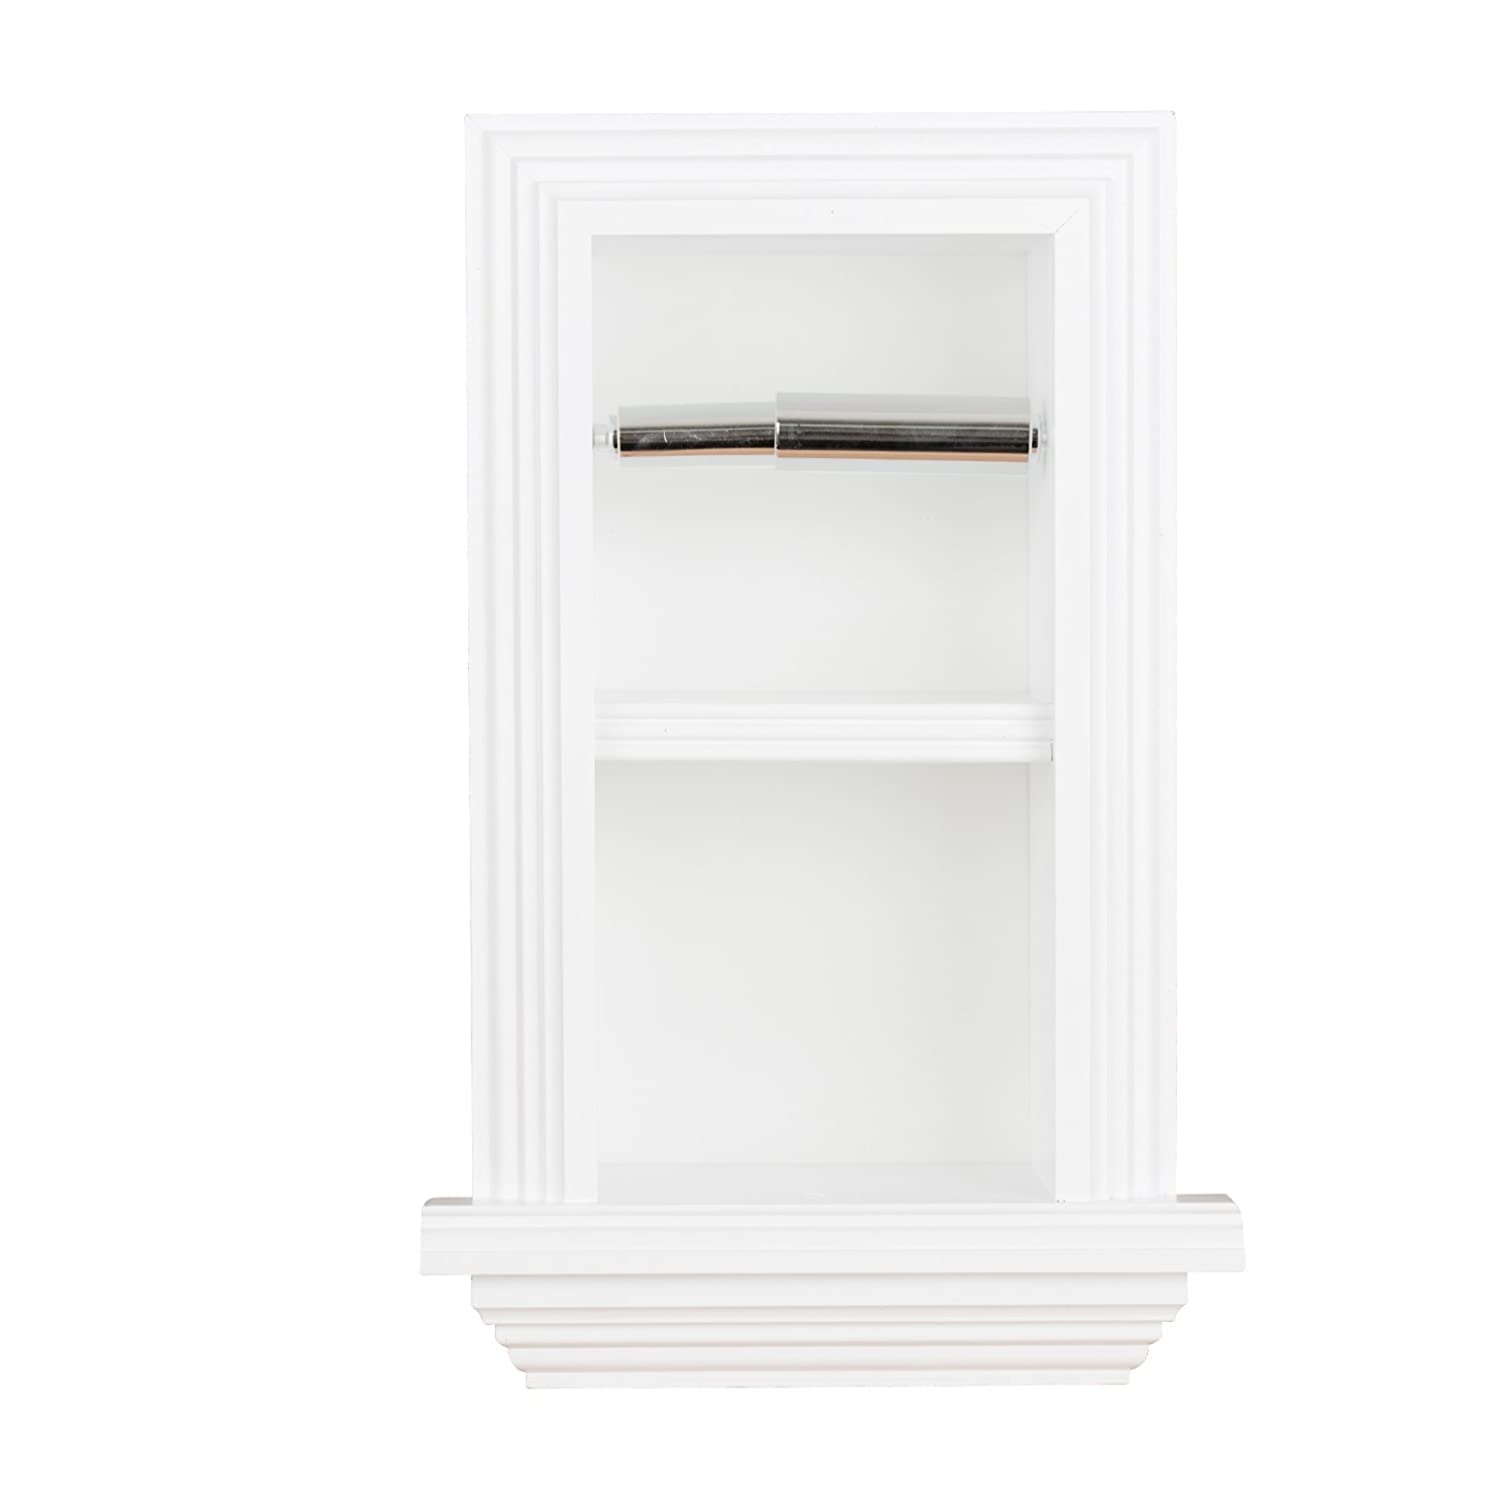 Florida Breeze Cabinets Zephyr Recessed Toilet Paper Holder with Spare Roll, White